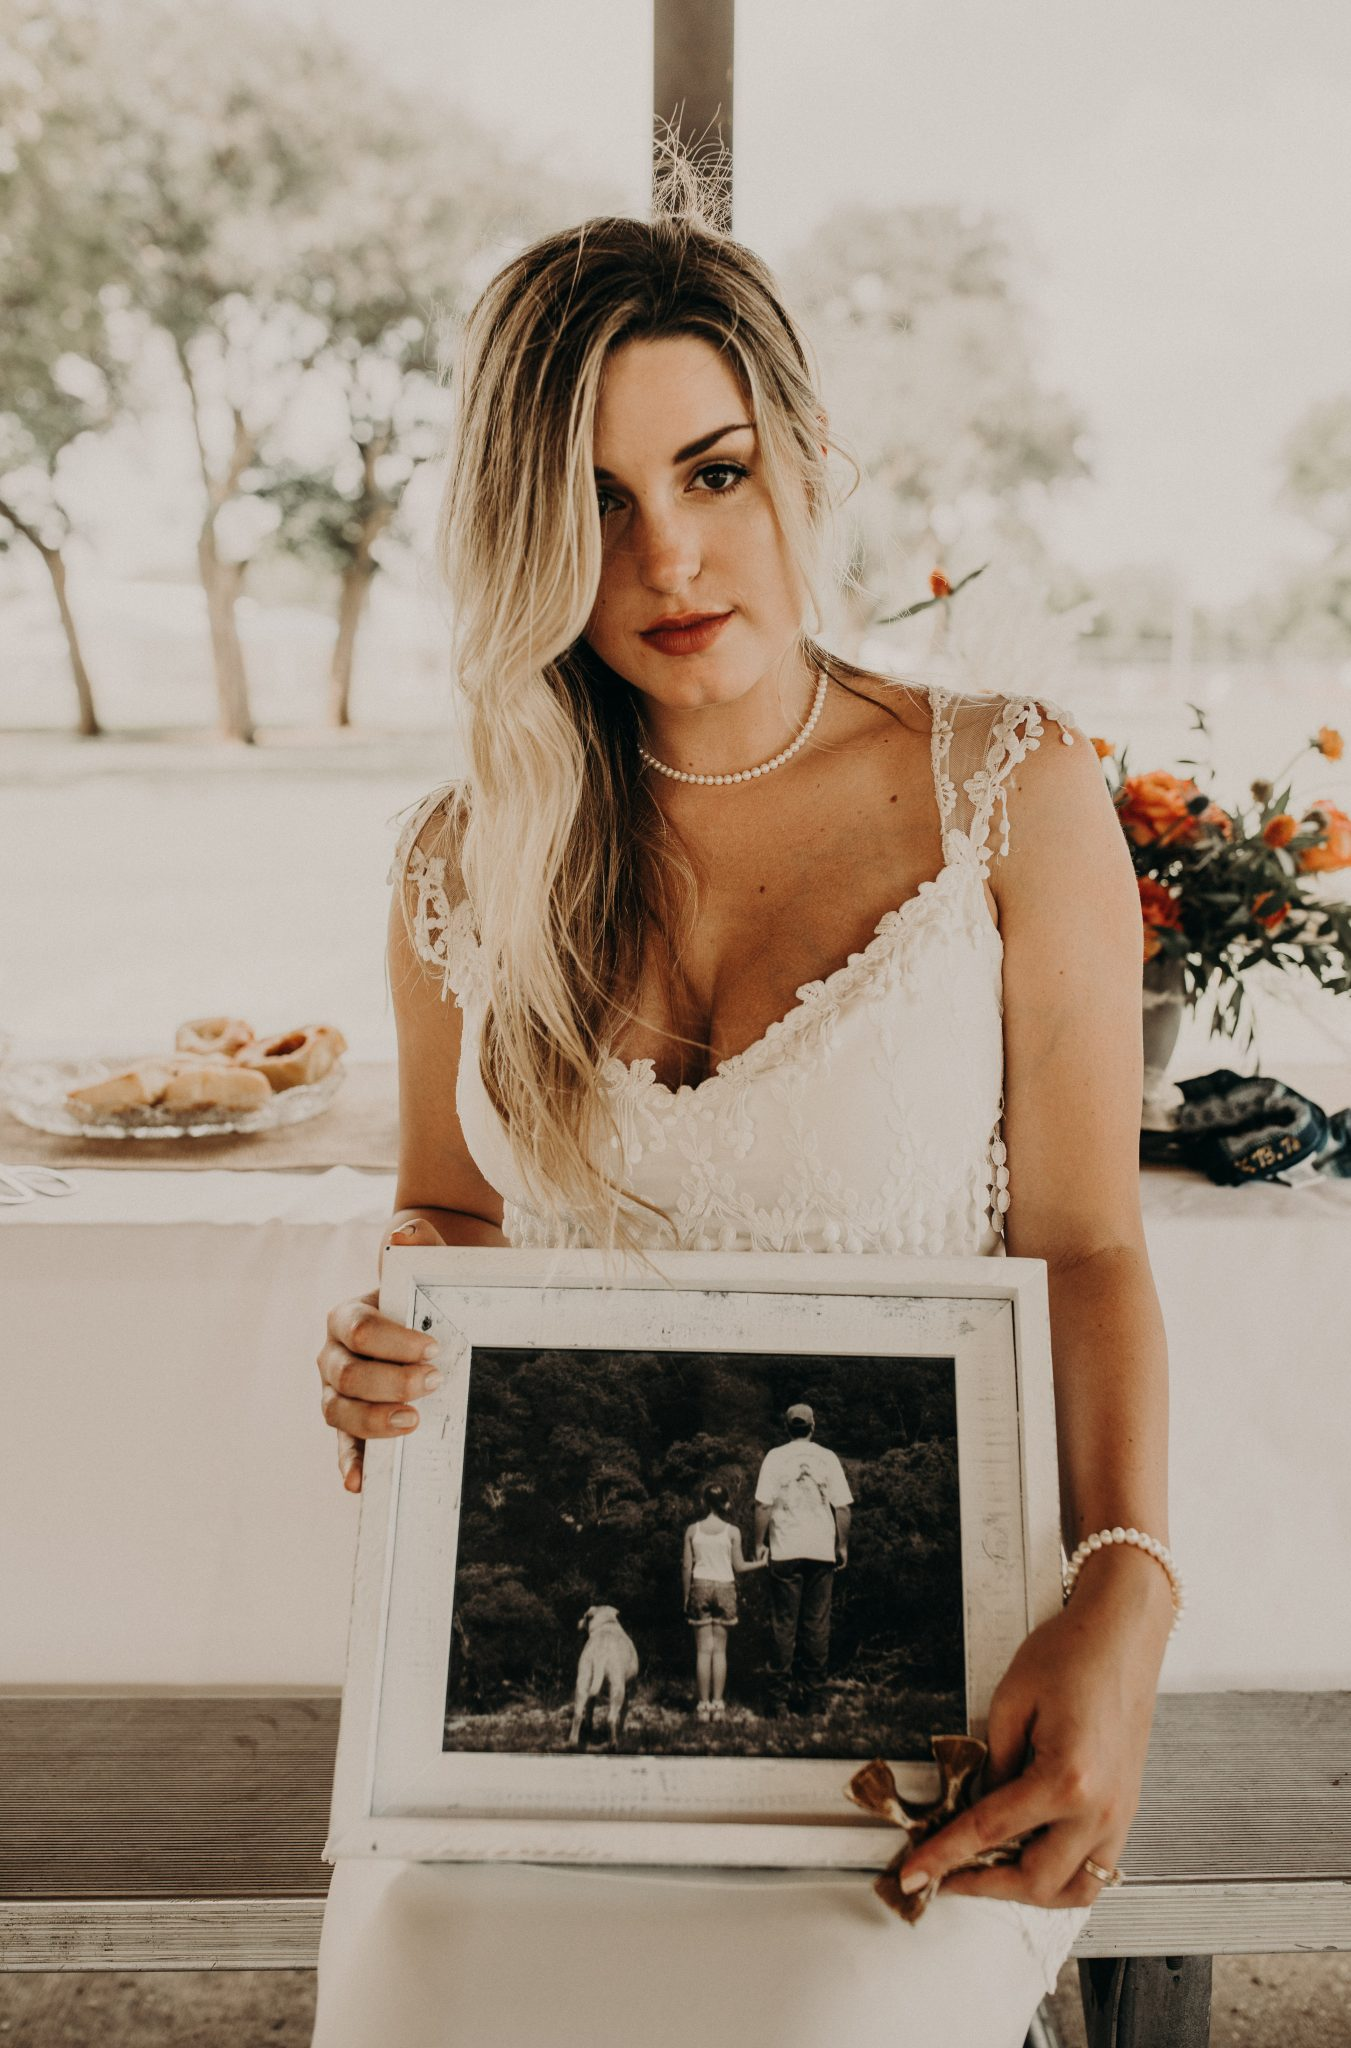 bride sitting on a wooden bench and holding a photograph in a white wooden frame of a dog and a small girl holding an adult male's hand. behind the bride is a table with a plate of donuts and flowers on it and the table is covered in a white tablecloth